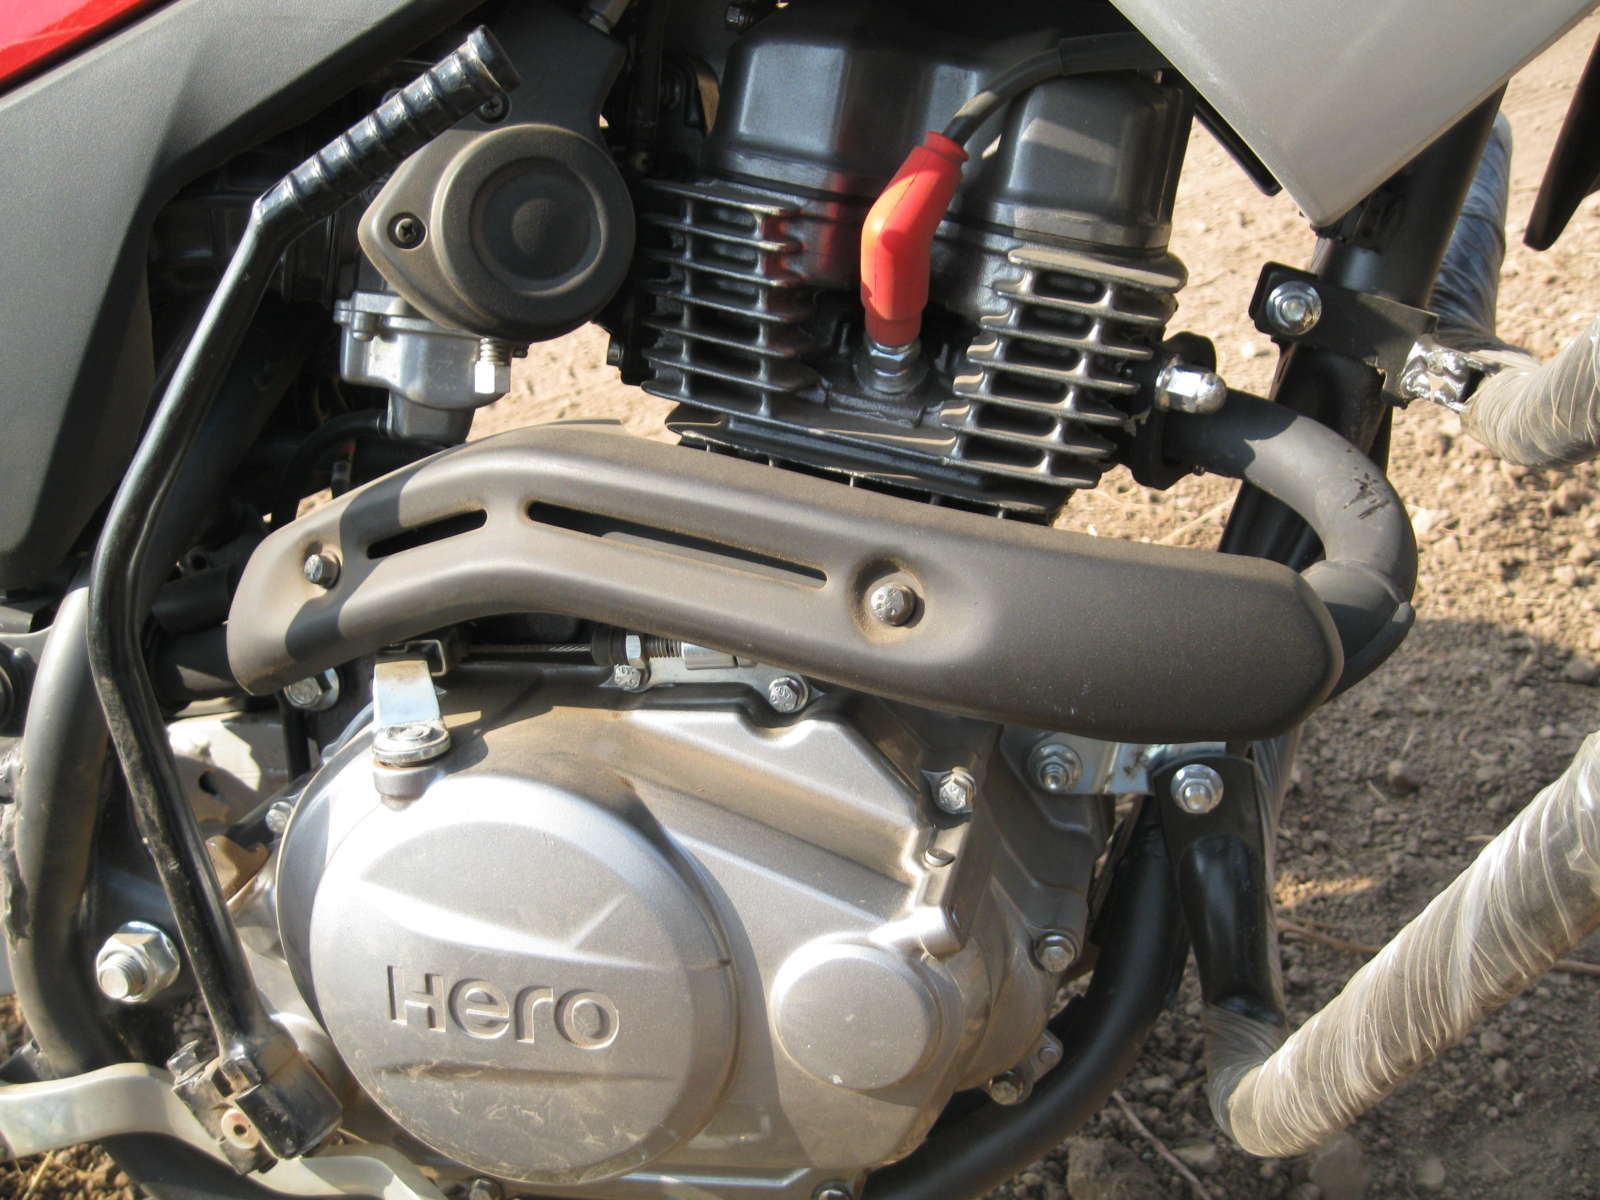 Hero MotoCorp developing a new 250cc engine  A 100cc and a 110cc